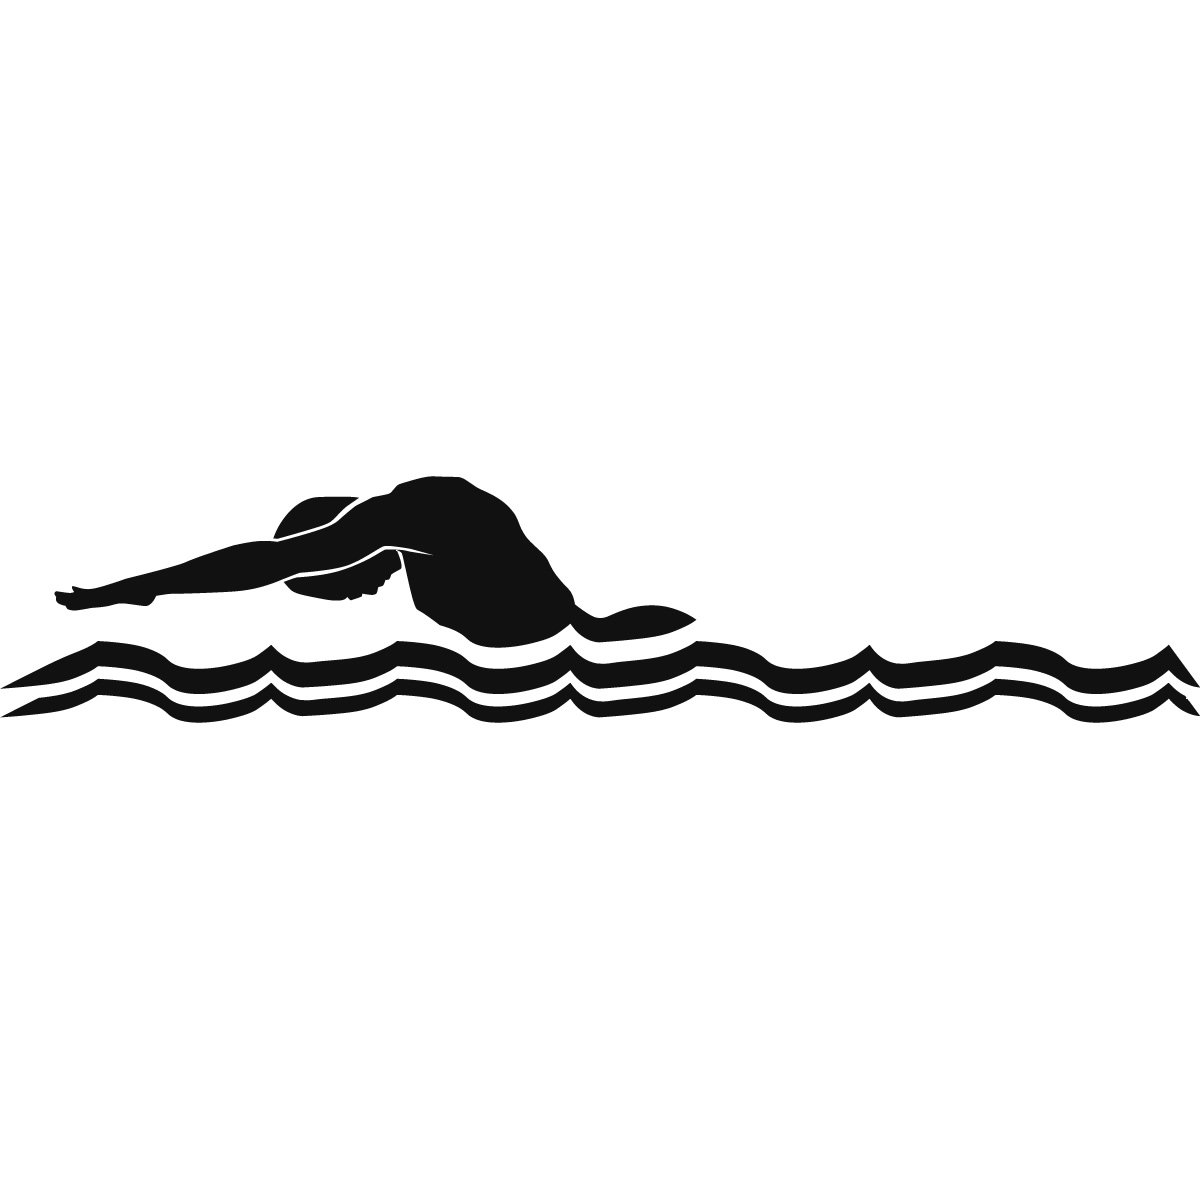 Swim Clipart Black And White